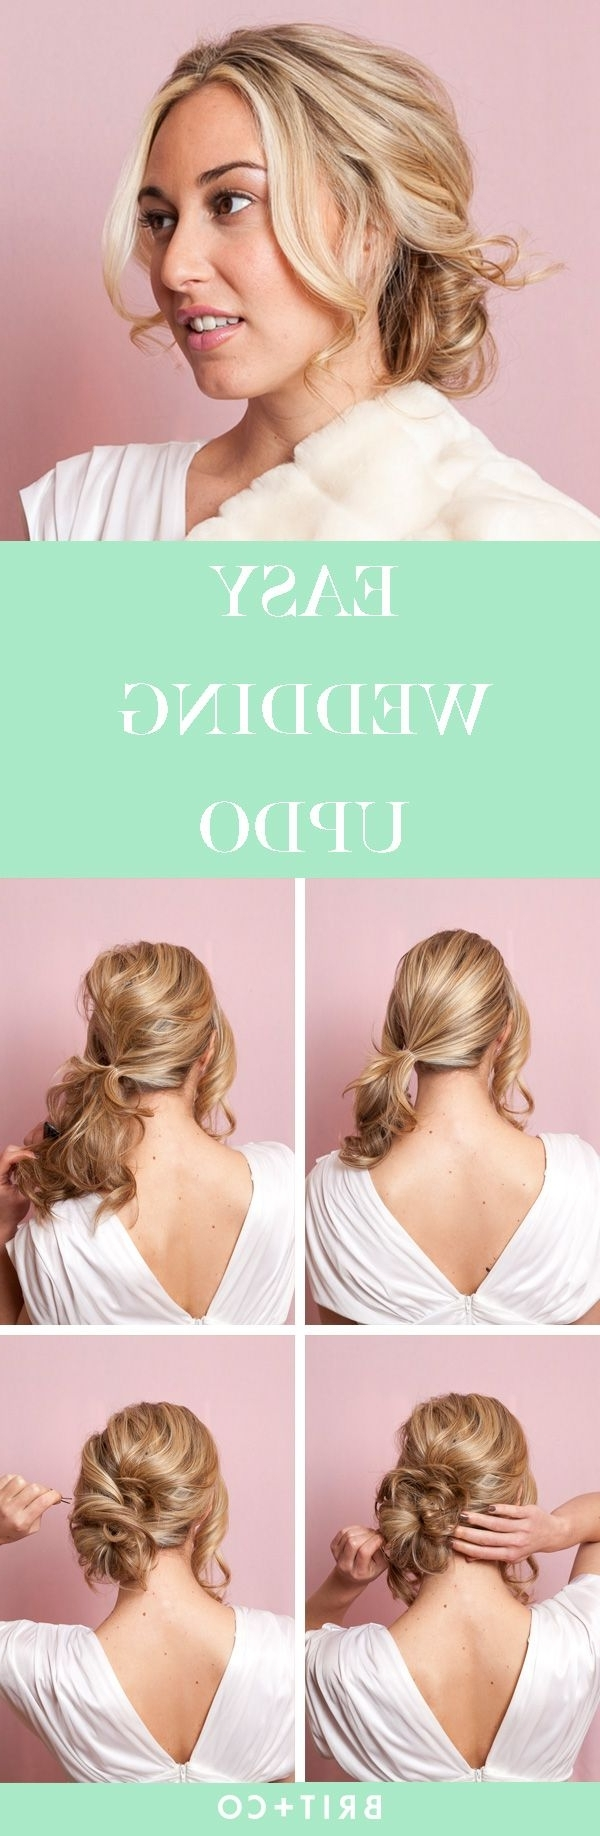 Coiffure Facile, Tuto Coiffure For Most Current Easy Wedding Hairstyles For Bridesmaids (View 4 of 15)